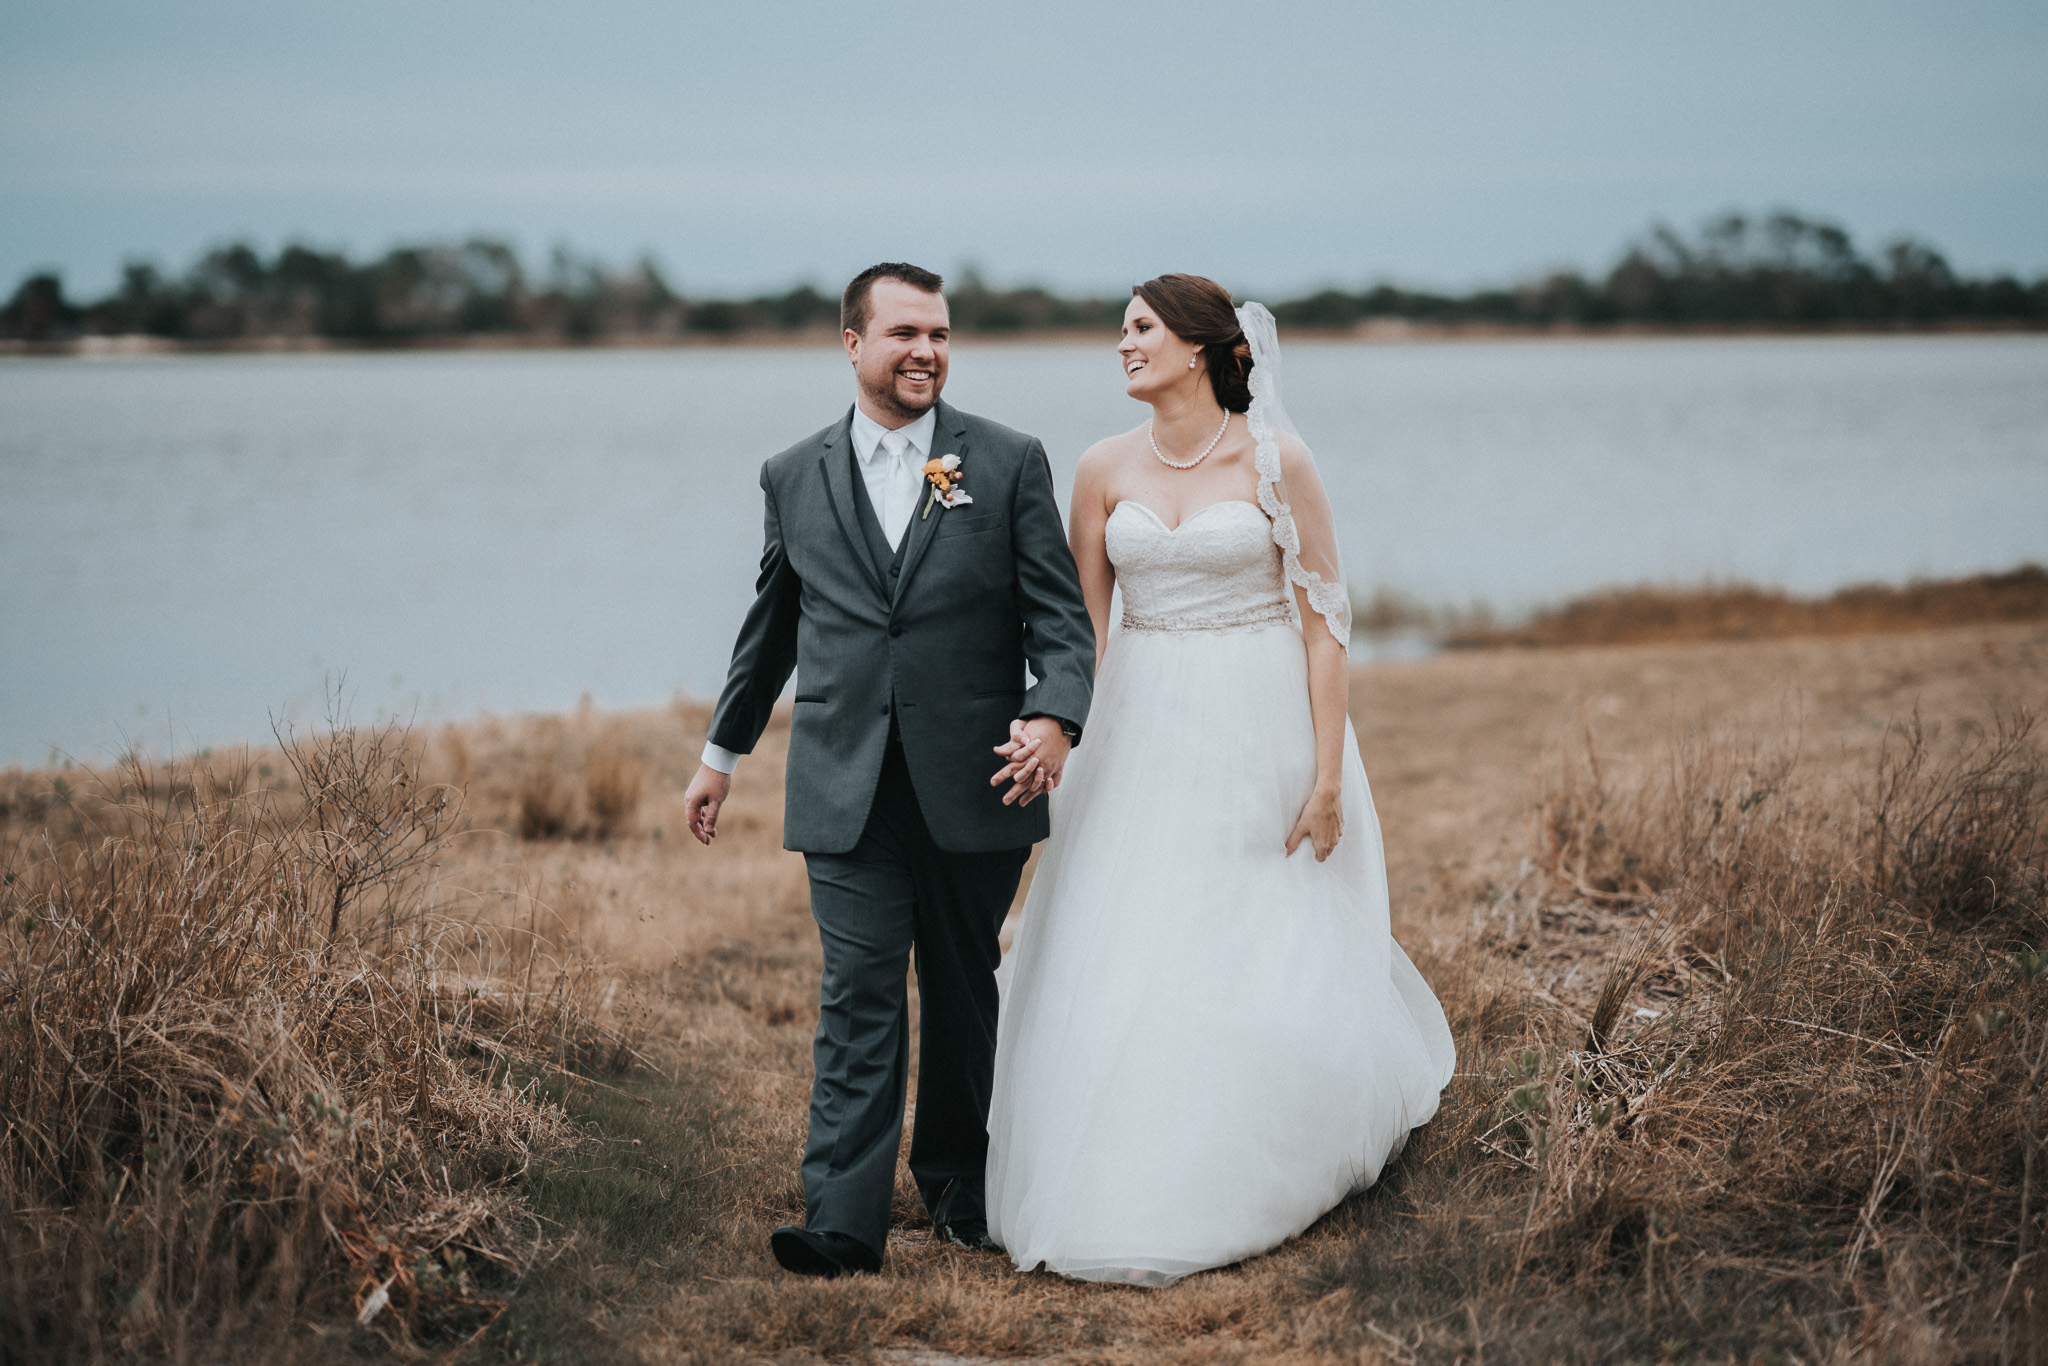 20171029_Ashli+Justin_Wedding_Jacksonville-31.jpg